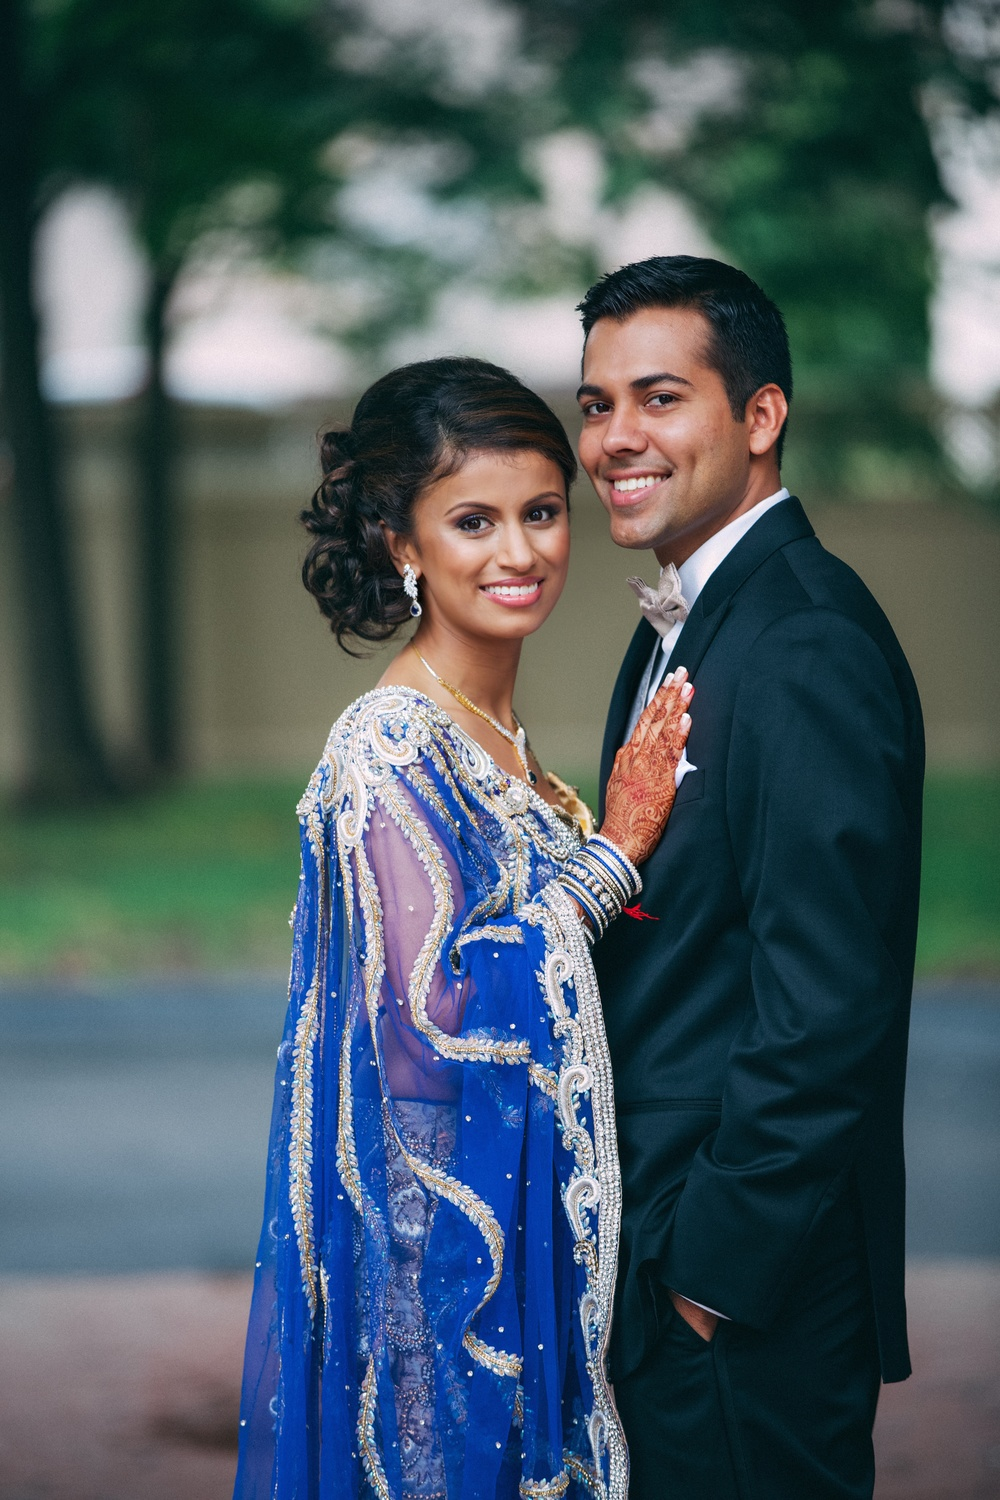 Le Cape Weddings - Prapti and Harsh Sneak Peek Indian Wedding  4.jpg